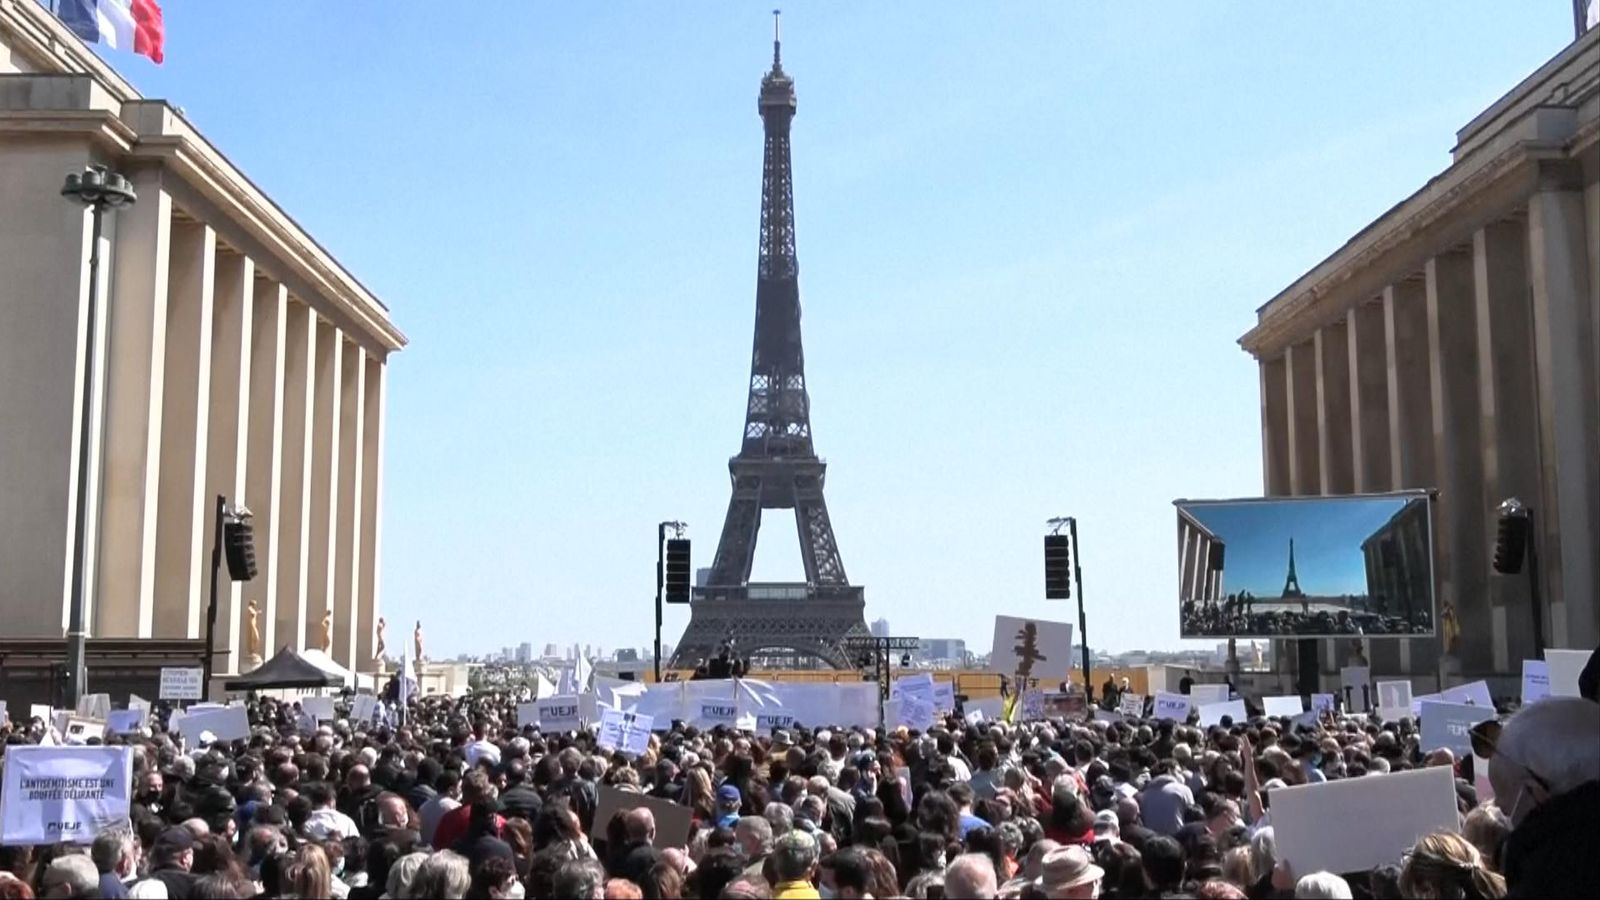 The news will come as a blow to many who were planning a getaway in France. Photo: Sky News